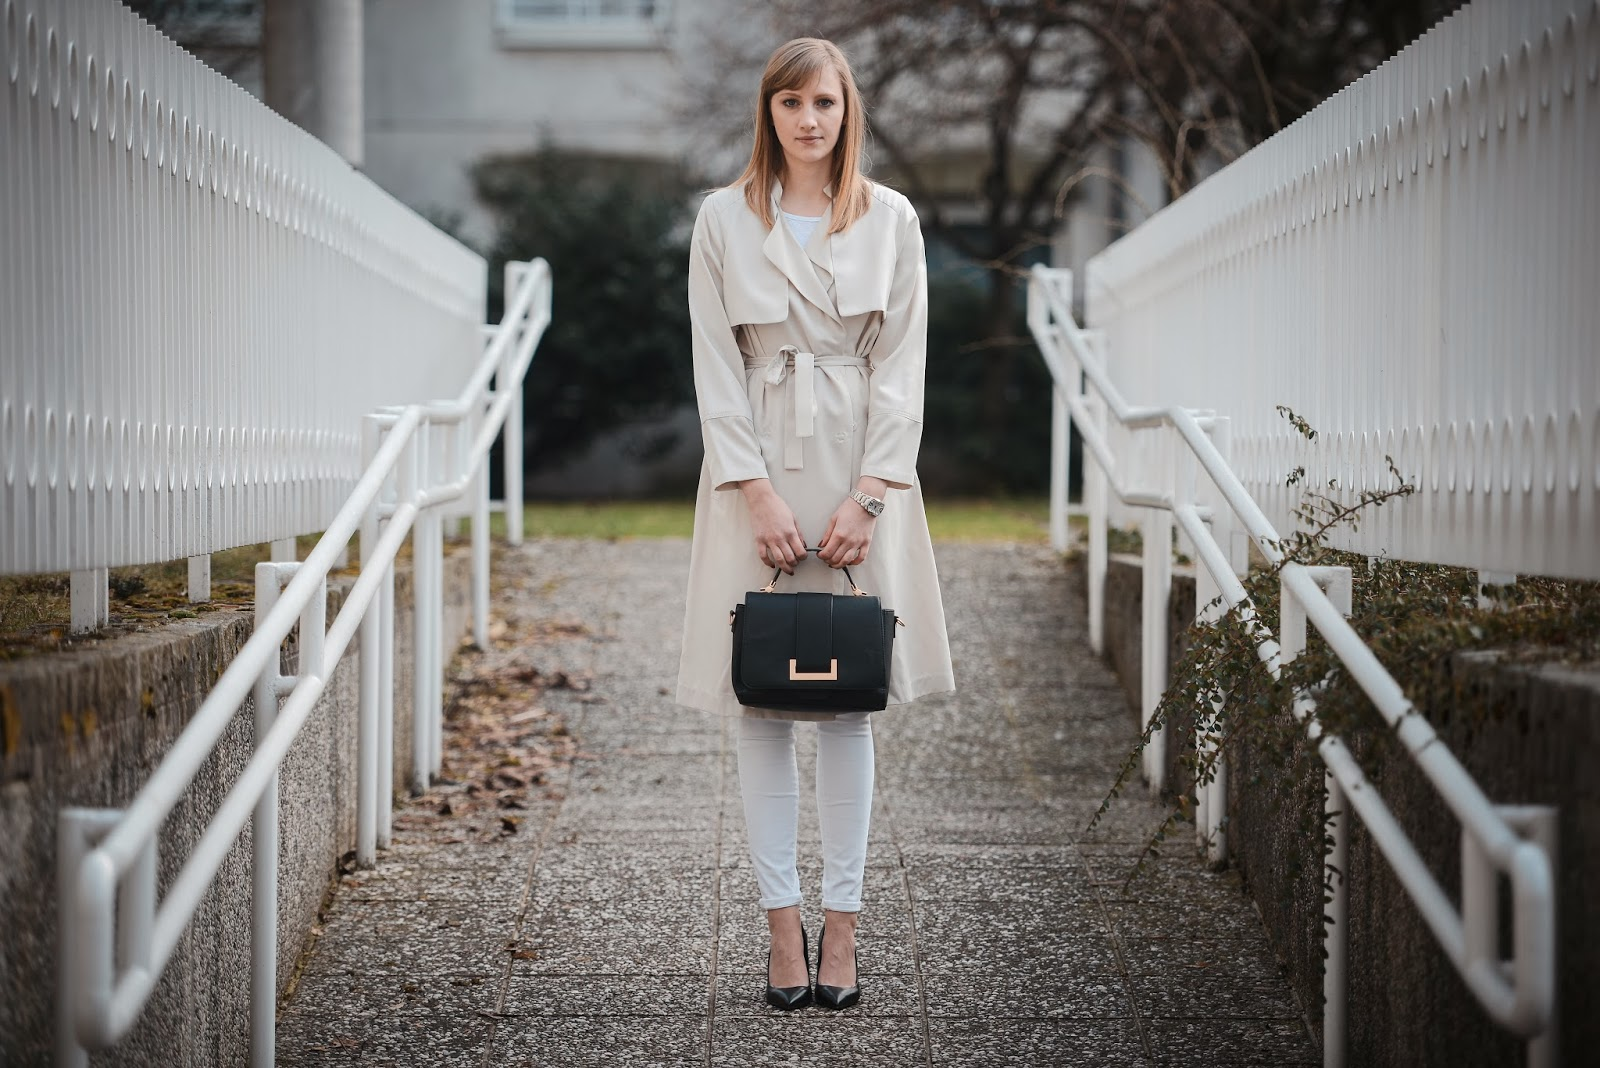 hm beige trench coat extra long, ss 2014 h&M, style blogger, all white outfit, fashion blogger, hm bag 2014